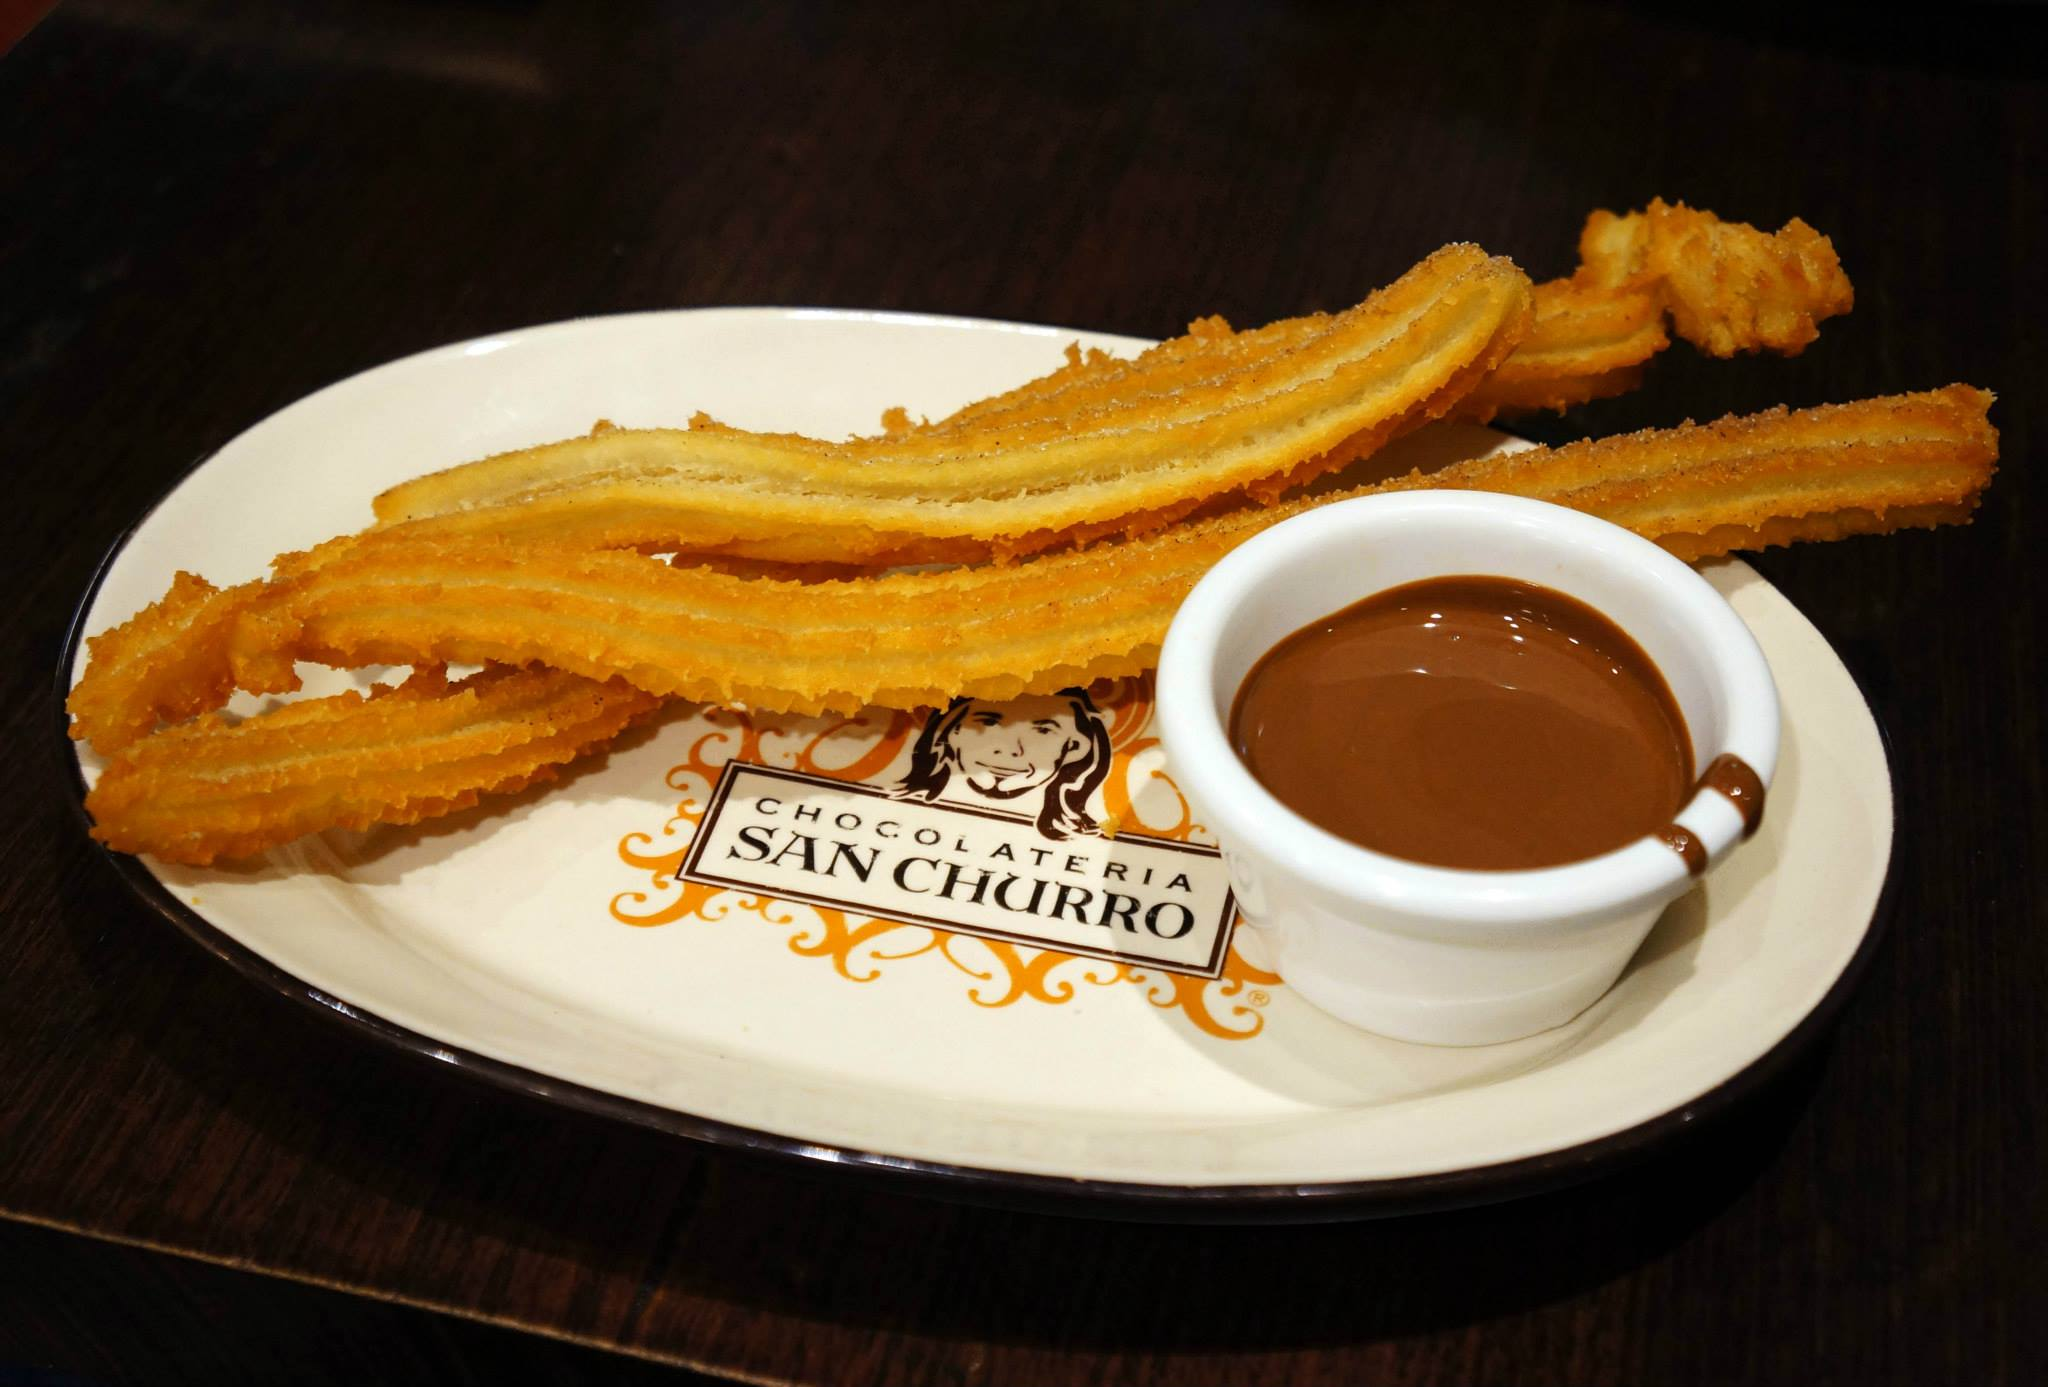 Chocolateria San Churro, Sydney